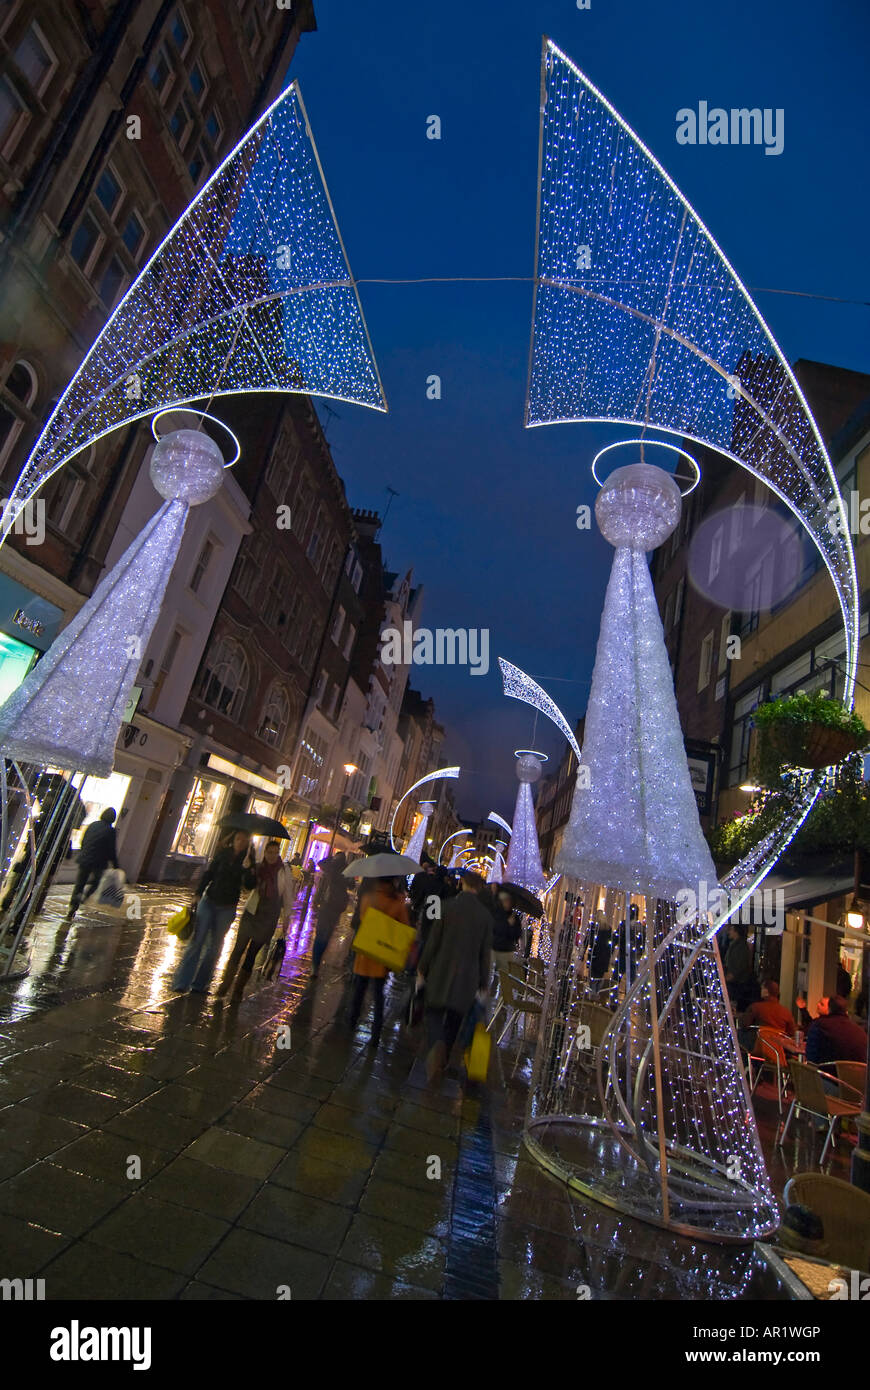 vertical wide angle of abstract christmas angel lights and lots of shoppers in central london in the rain at night